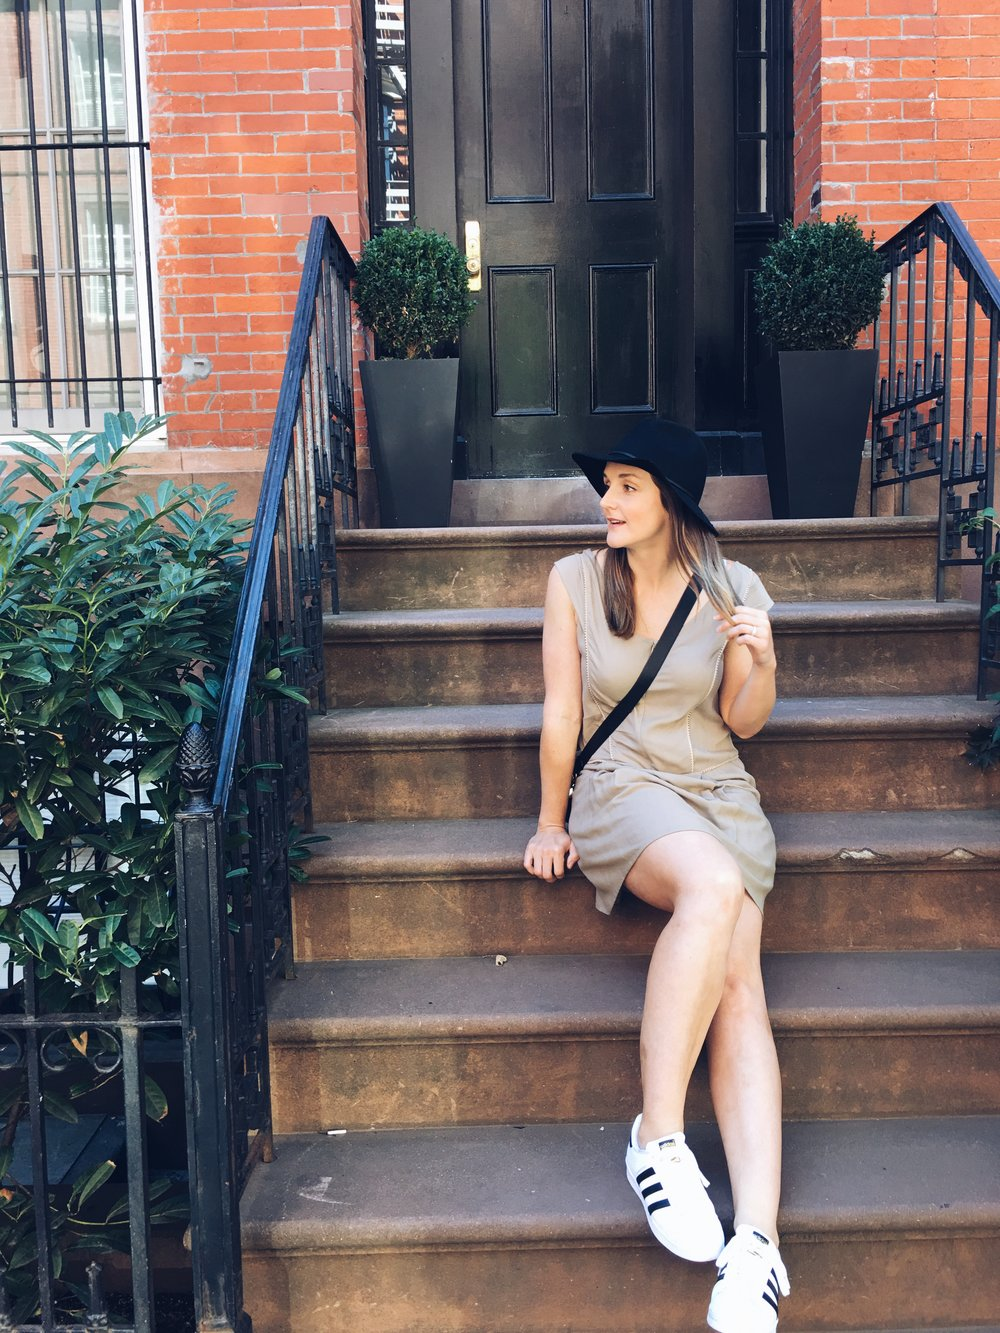 Oh you know, just casually hanging out on the steps of a Brownstone in West Village (wearing @aanilabel).